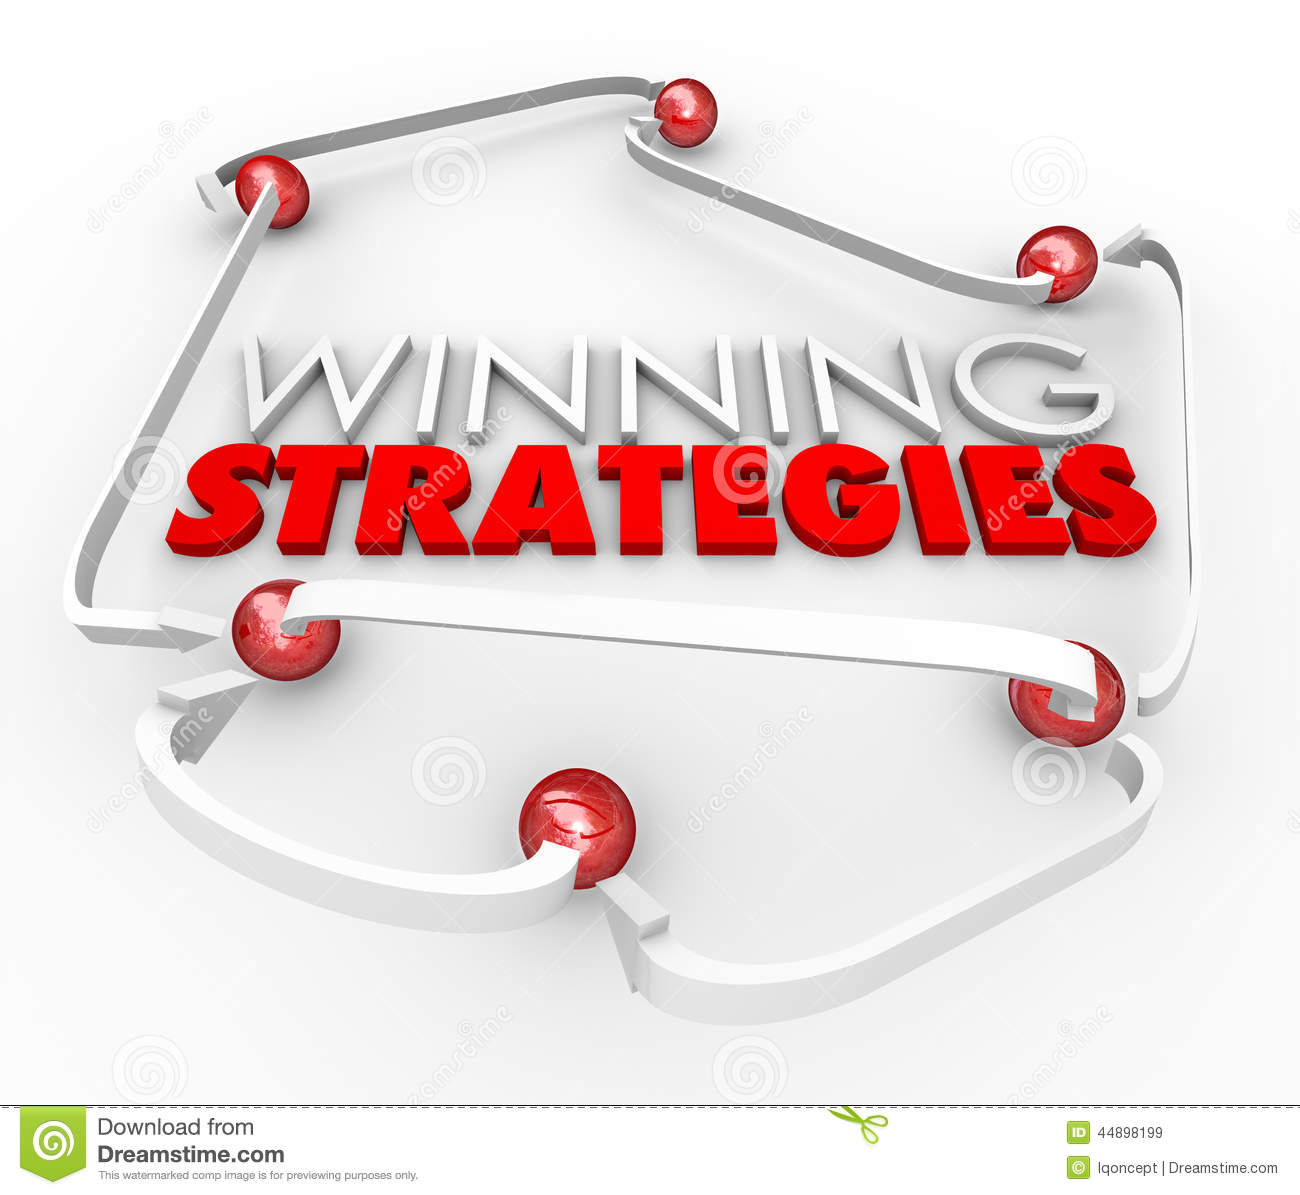 Strategies clipart.